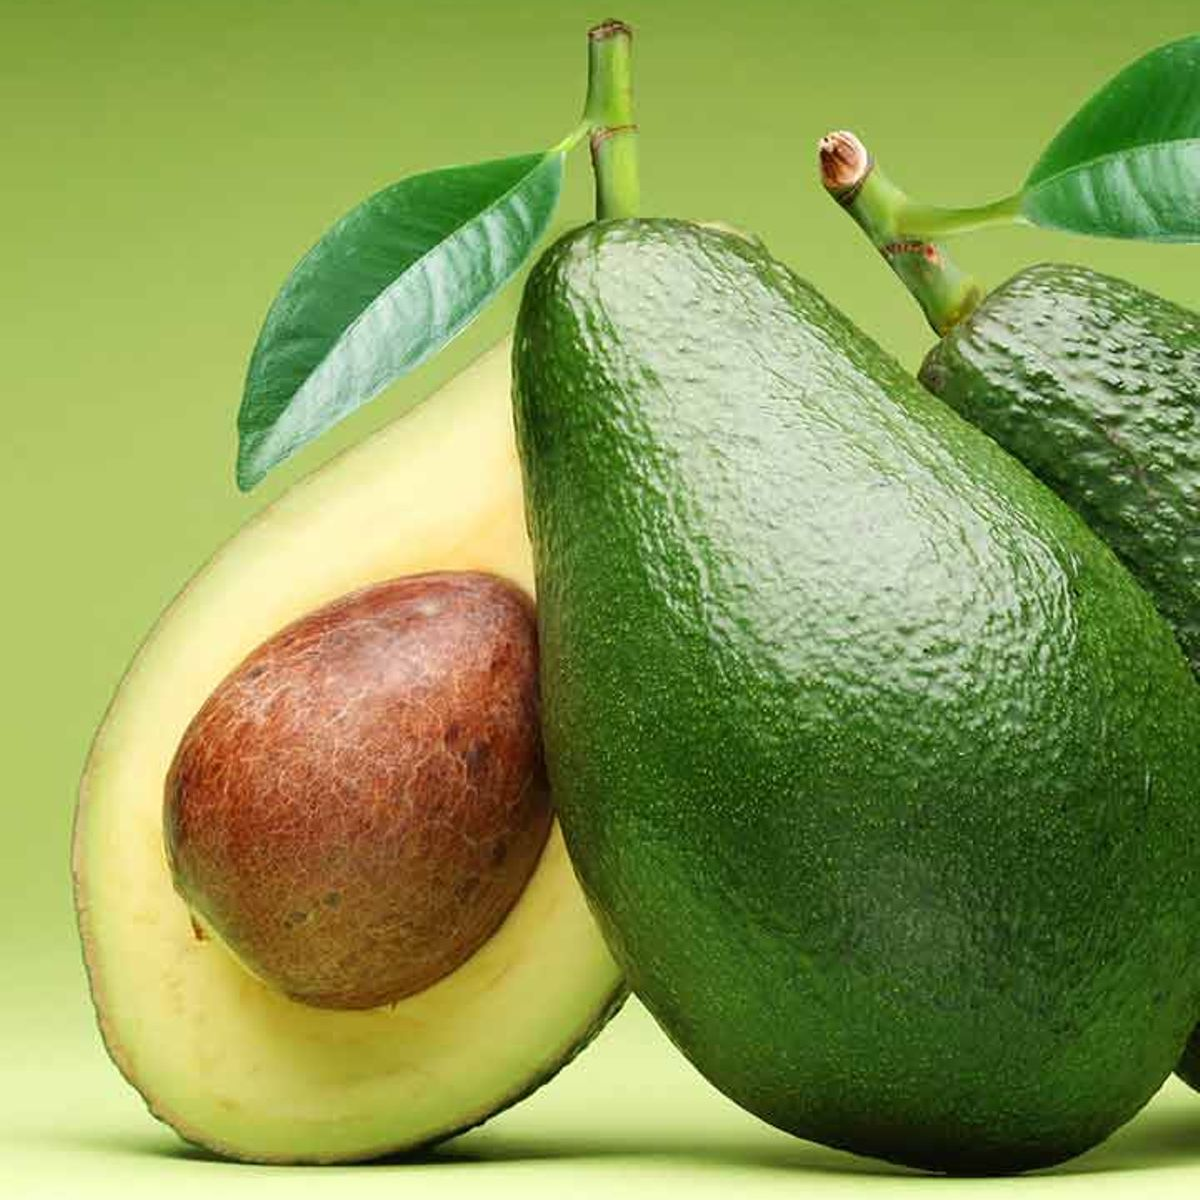 Side effects of eating too many avocados